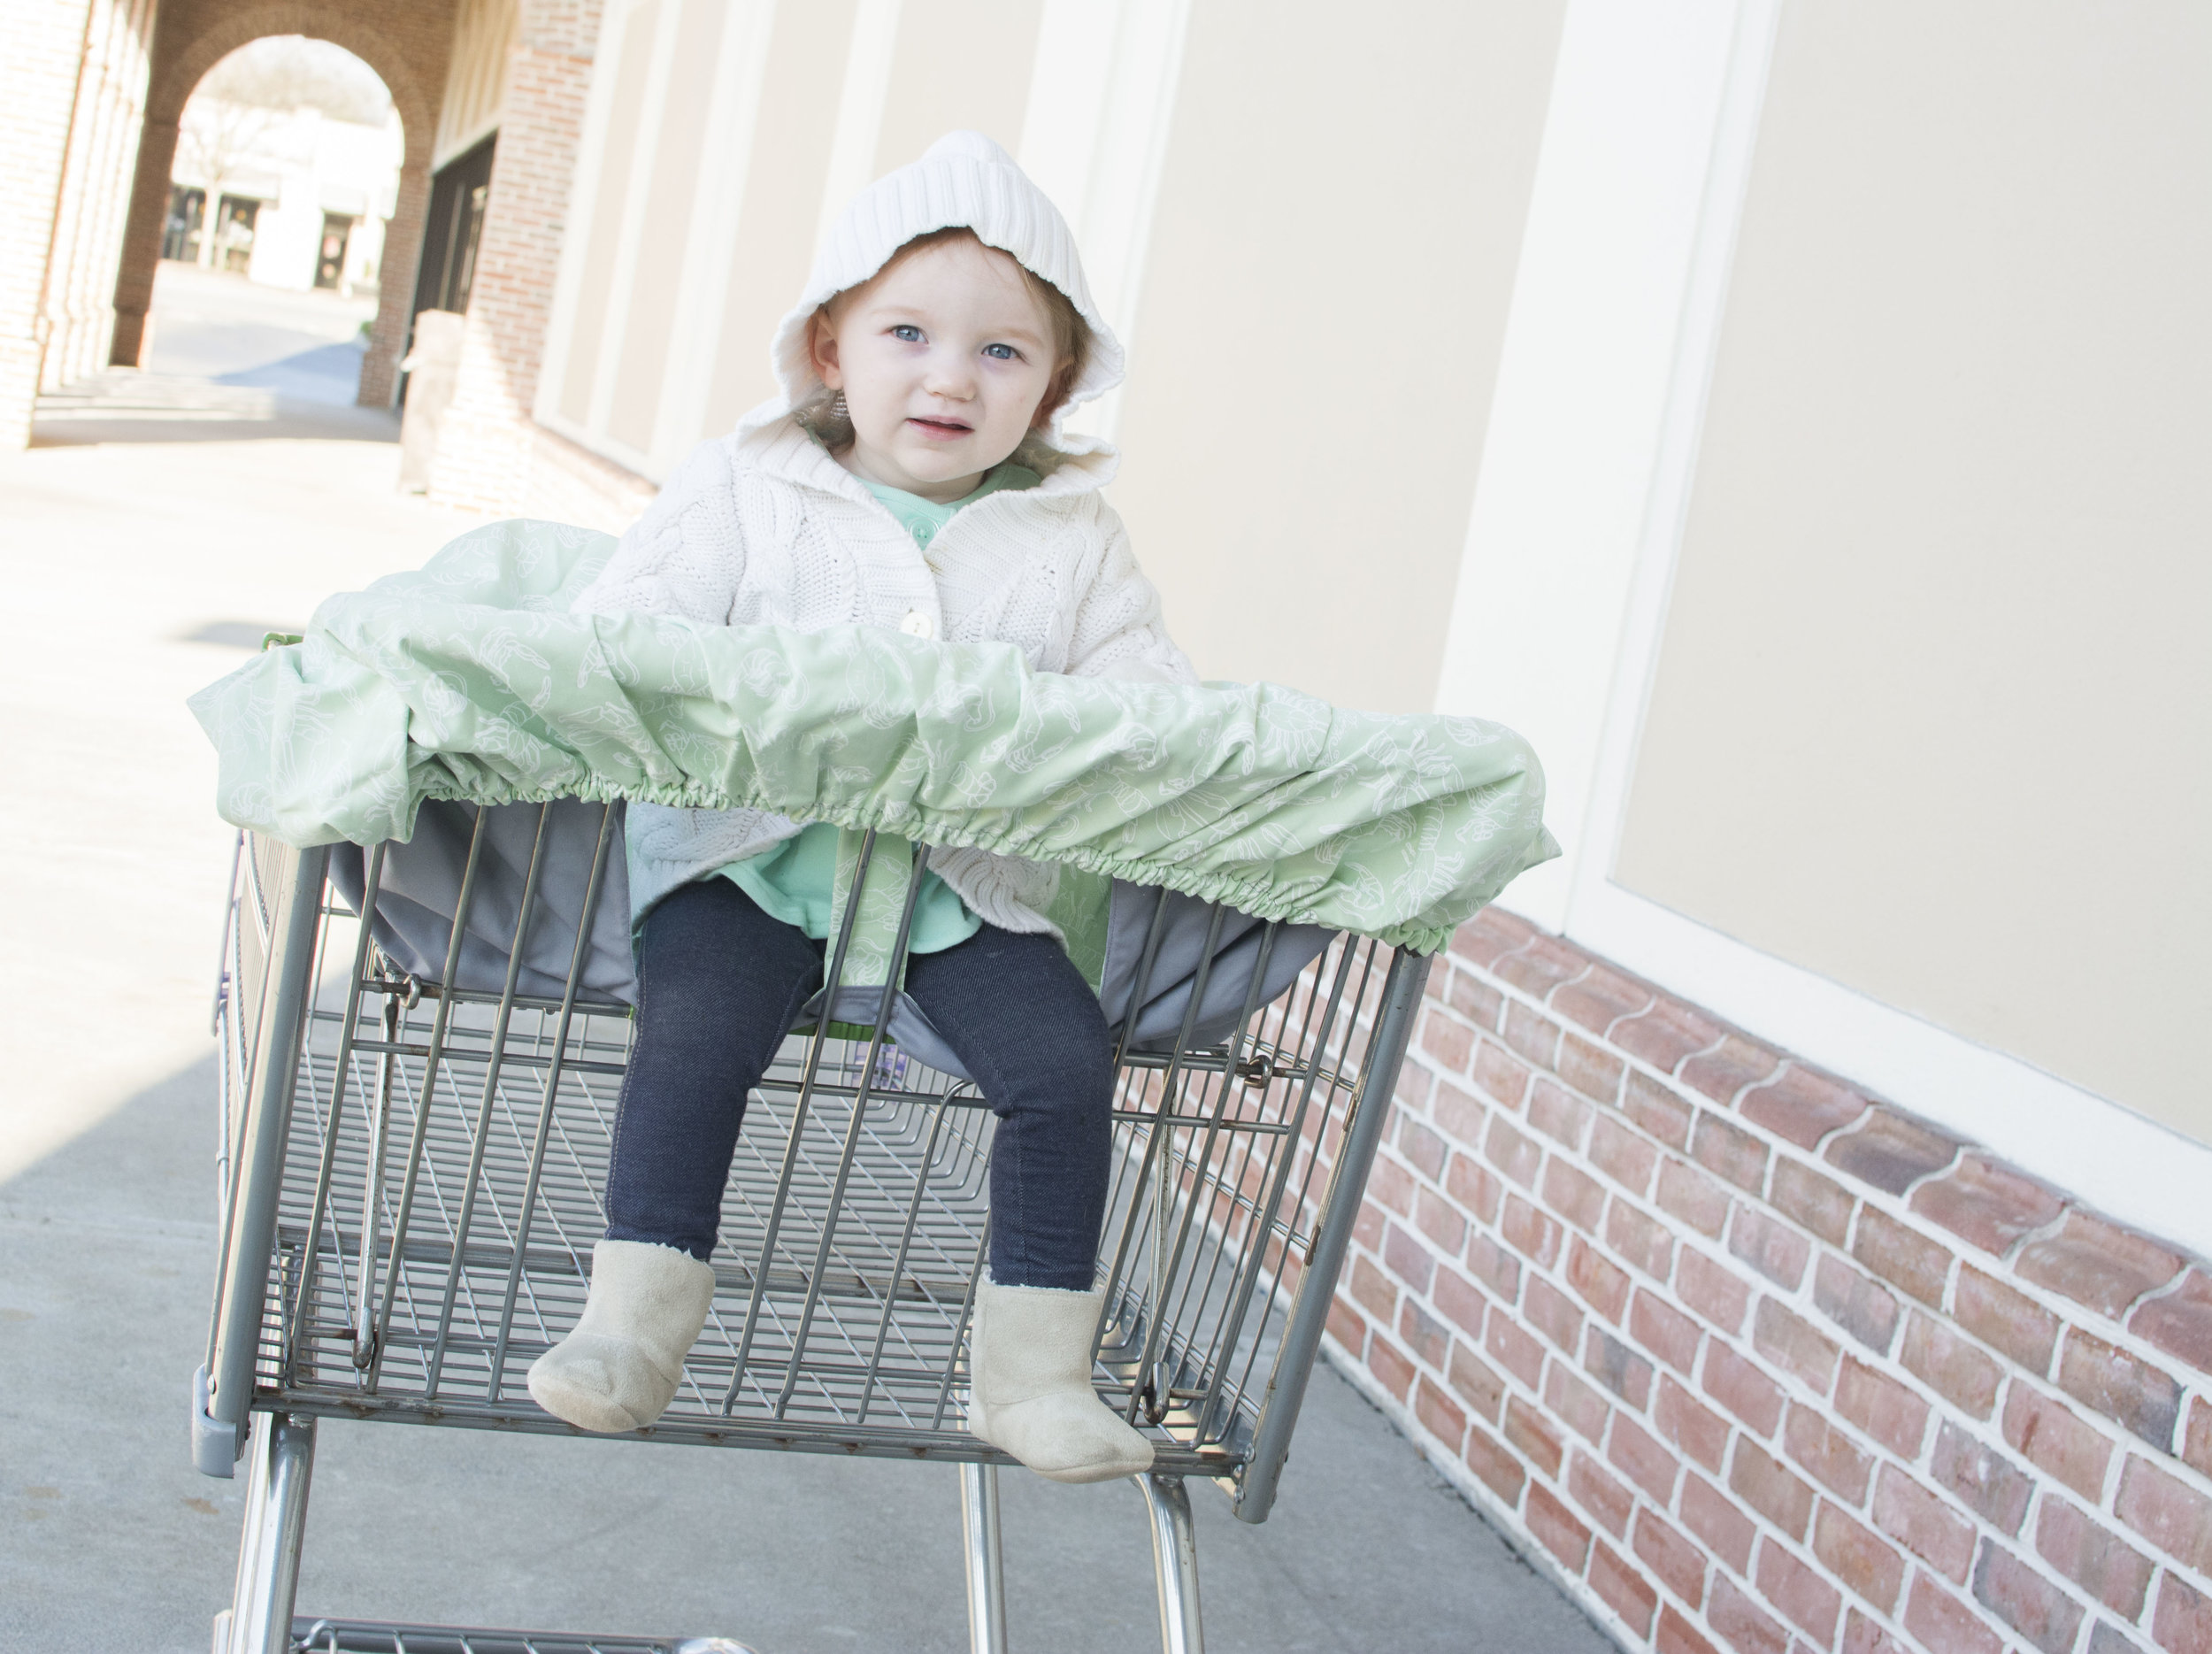 Pictured: Moss & Marsh  Shopping Cart Cover